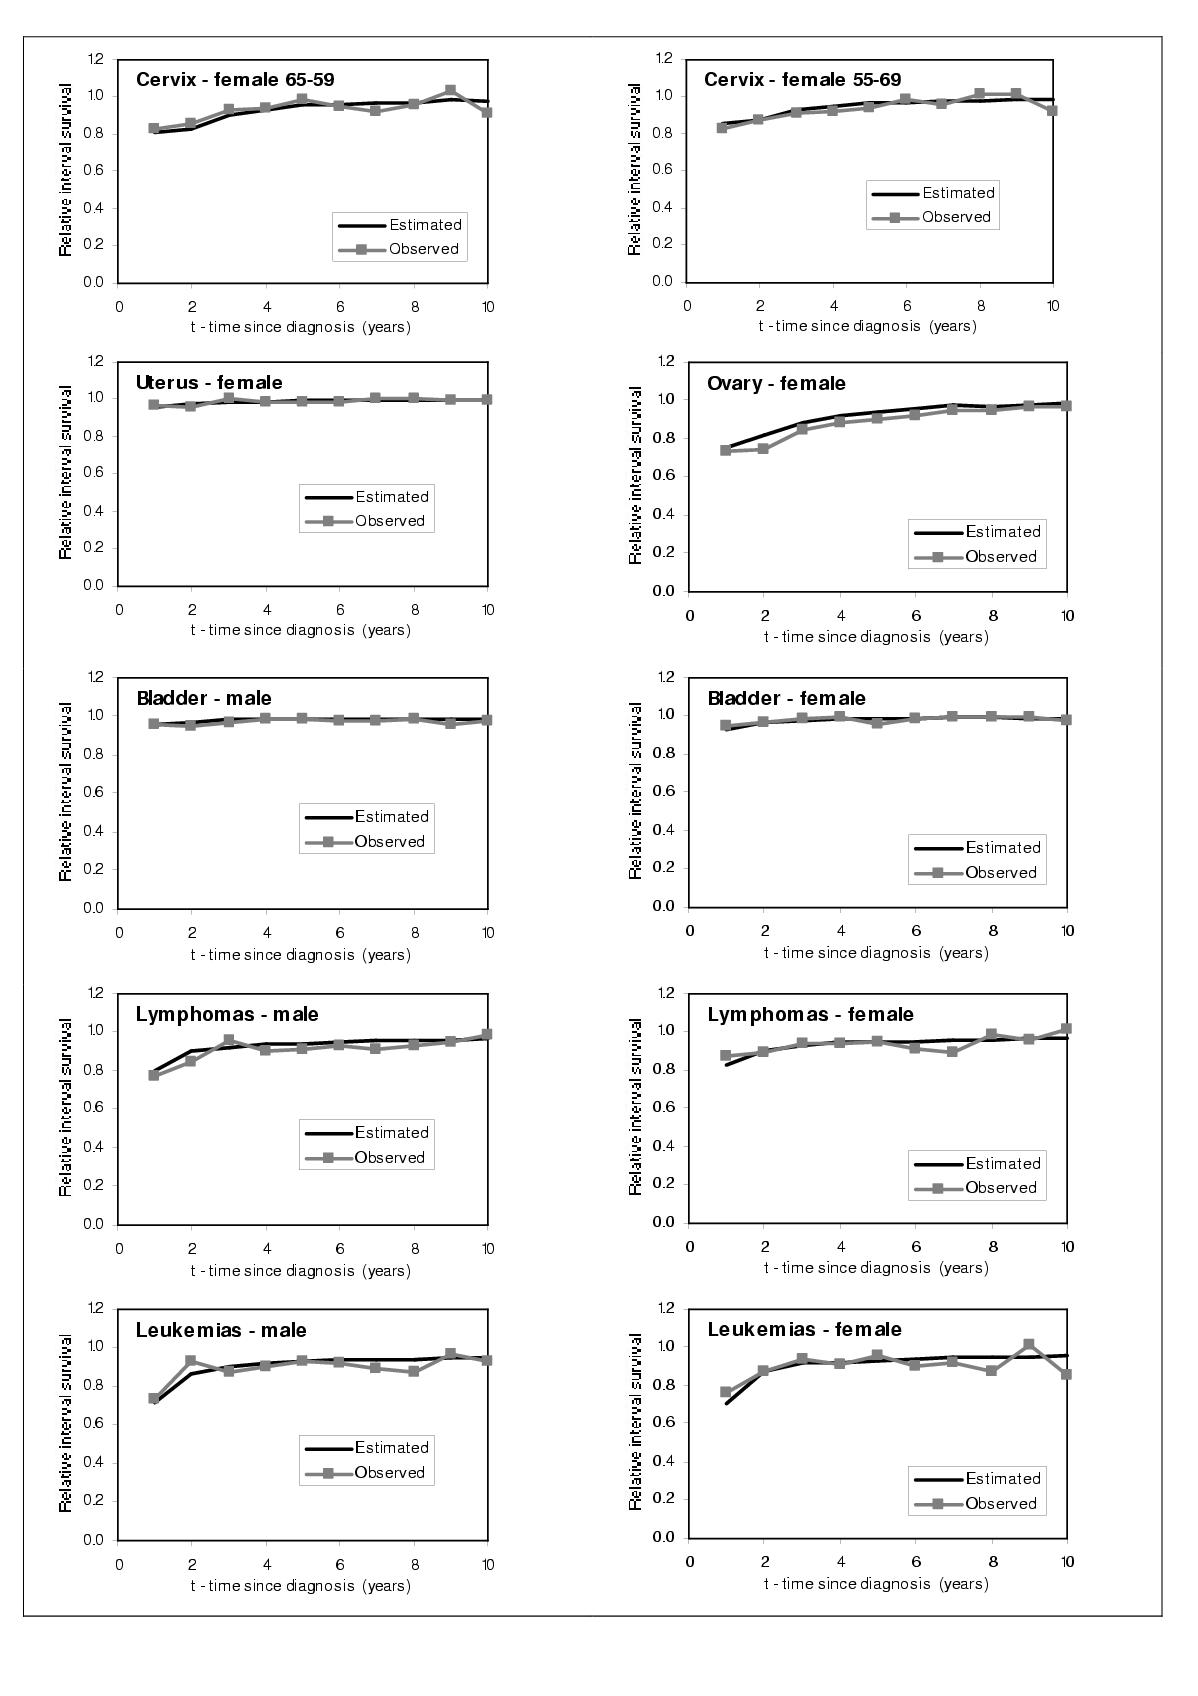 https://static-content.springer.com/image/art%3A10.1186%2F1471-2407-2-36/MediaObjects/12885_2002_Article_56_Fig9_HTML.jpg